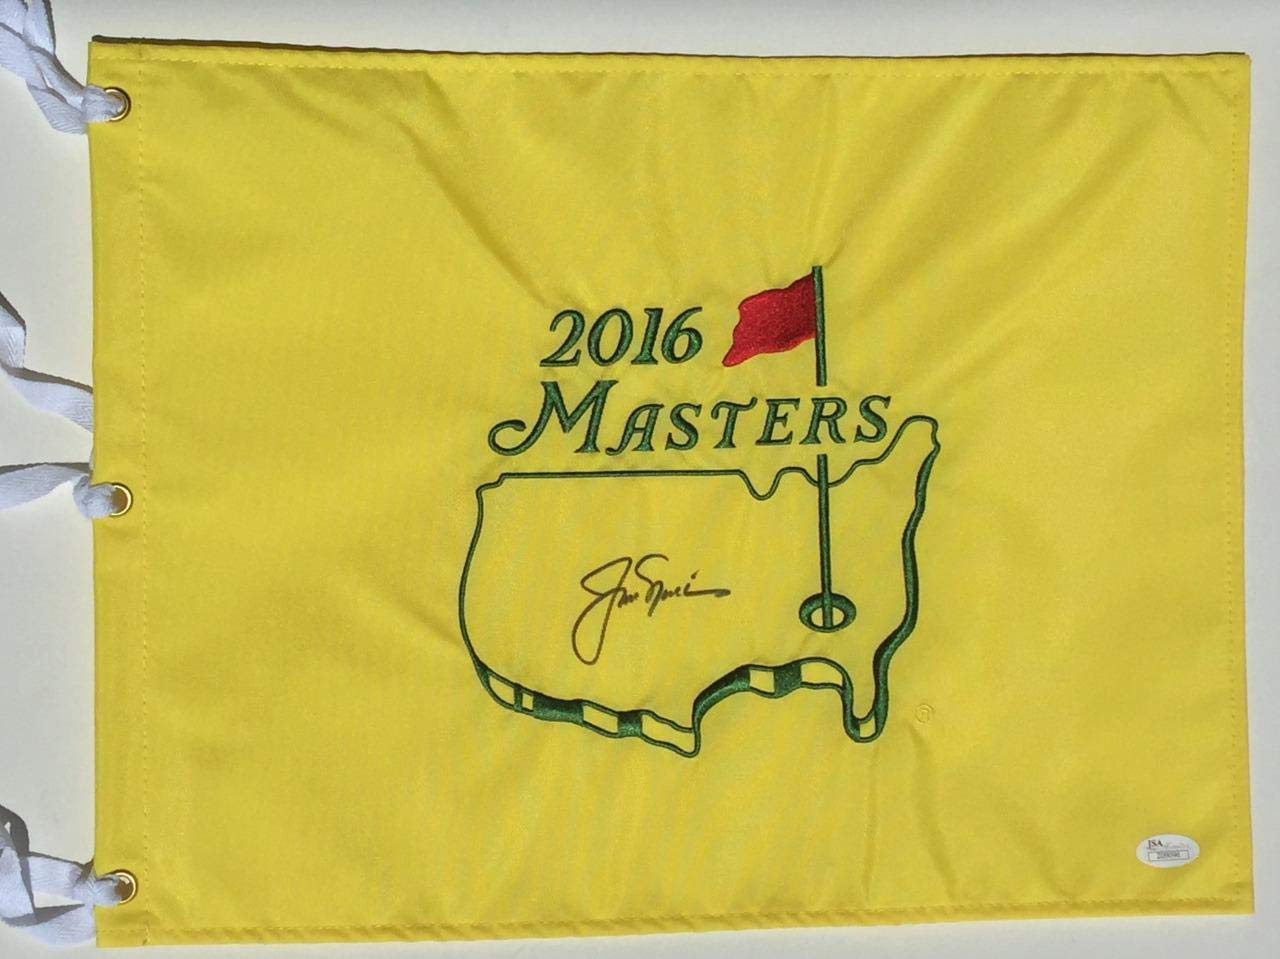 Jack Nicklaus A 10 Autograph Dead Center Signed 2016 Masters Flag Z09094 JSA Certified Autographed Pin Flags